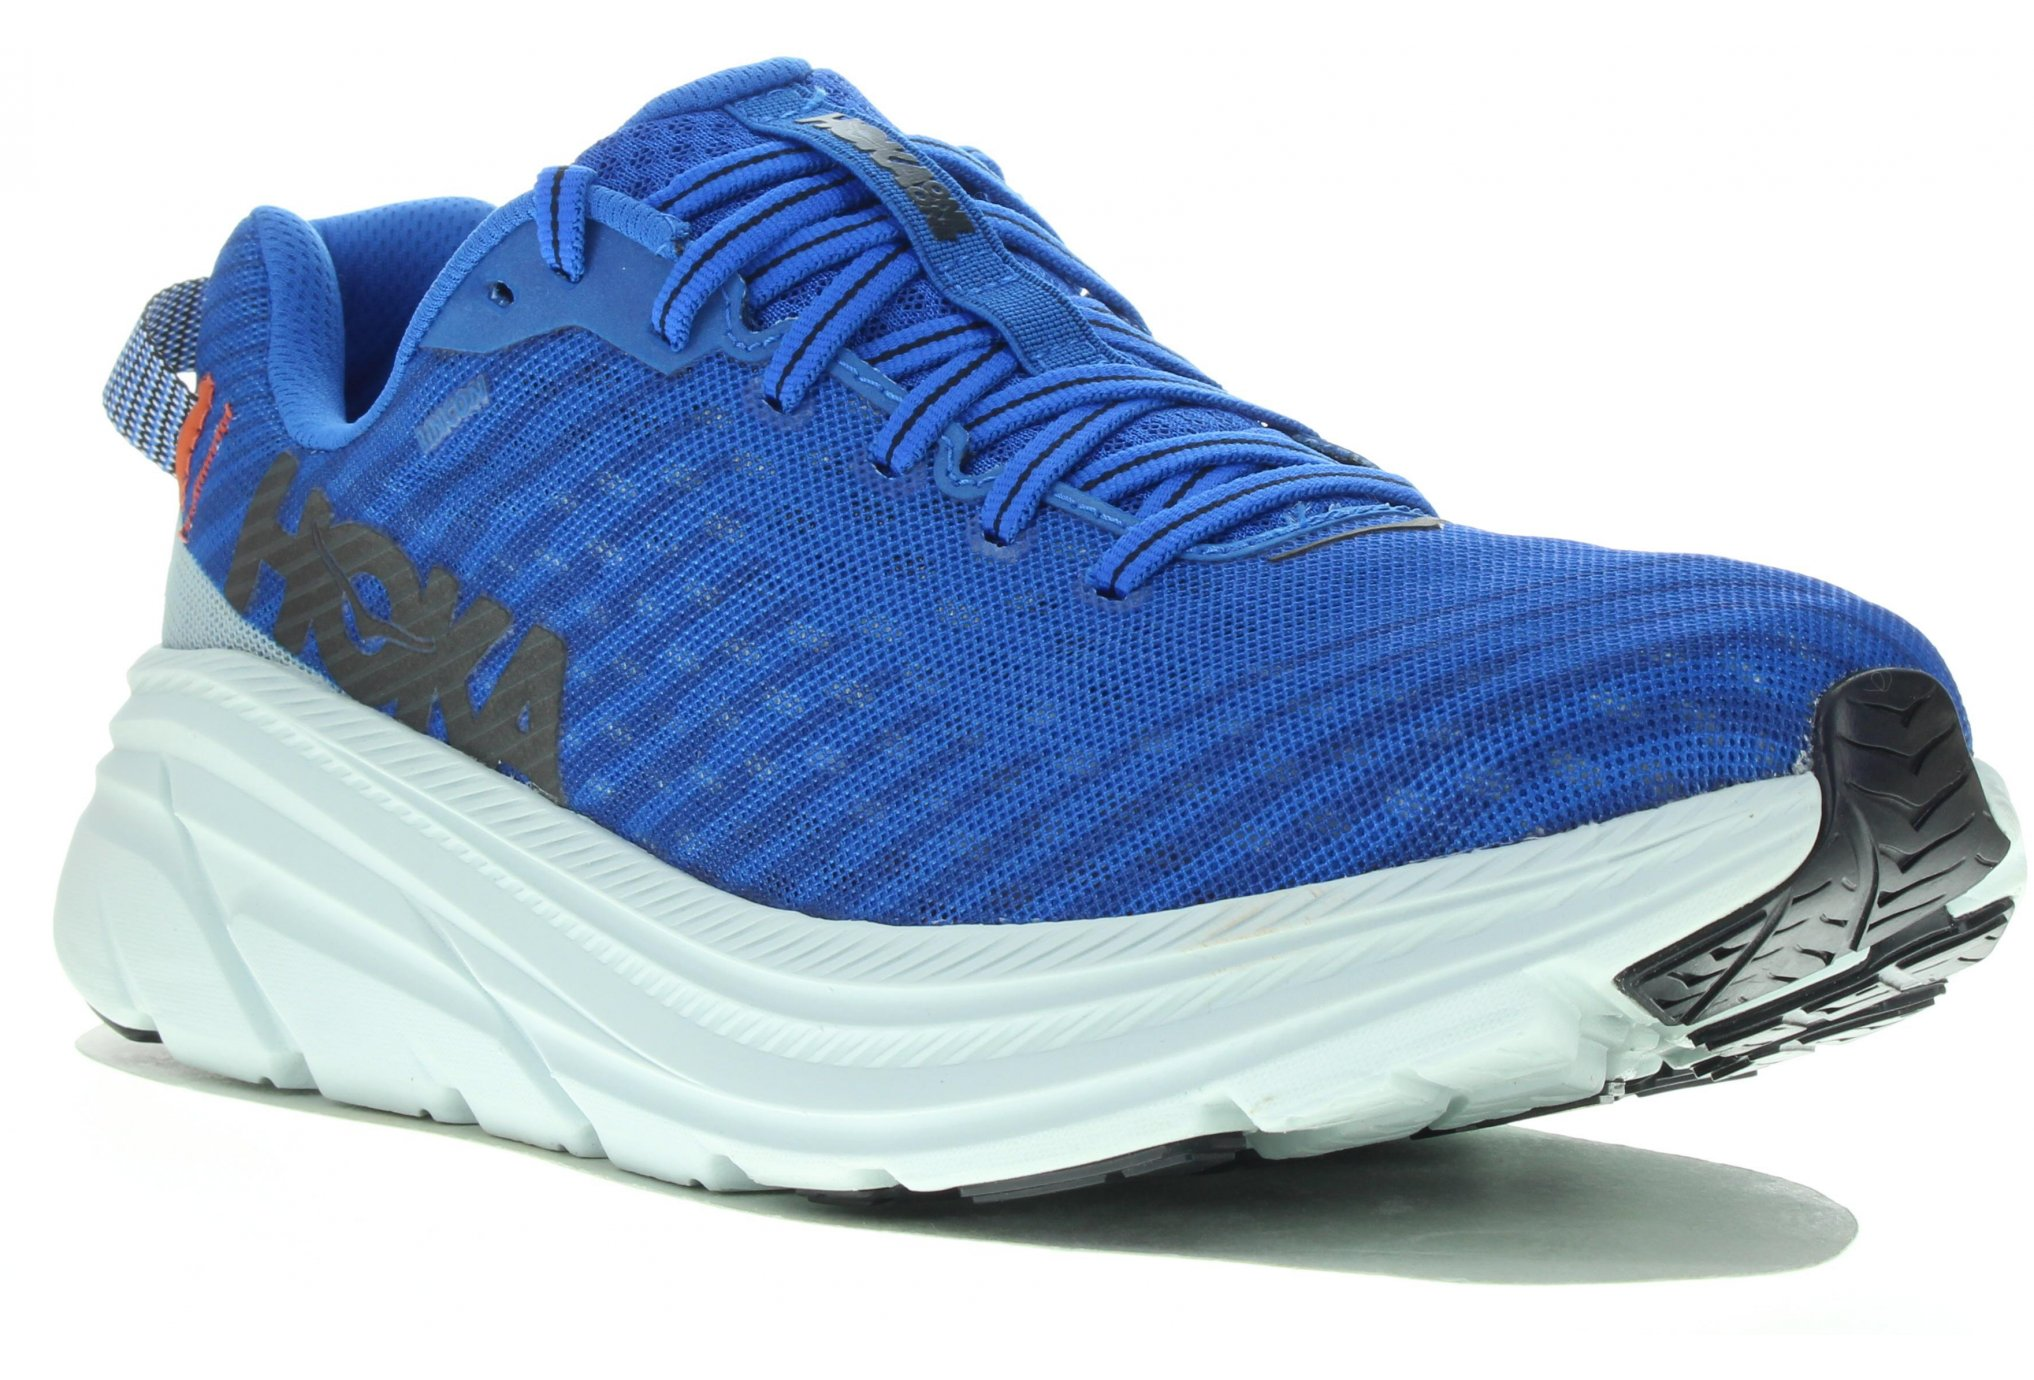 Hoka One One Rincon Chaussures homme